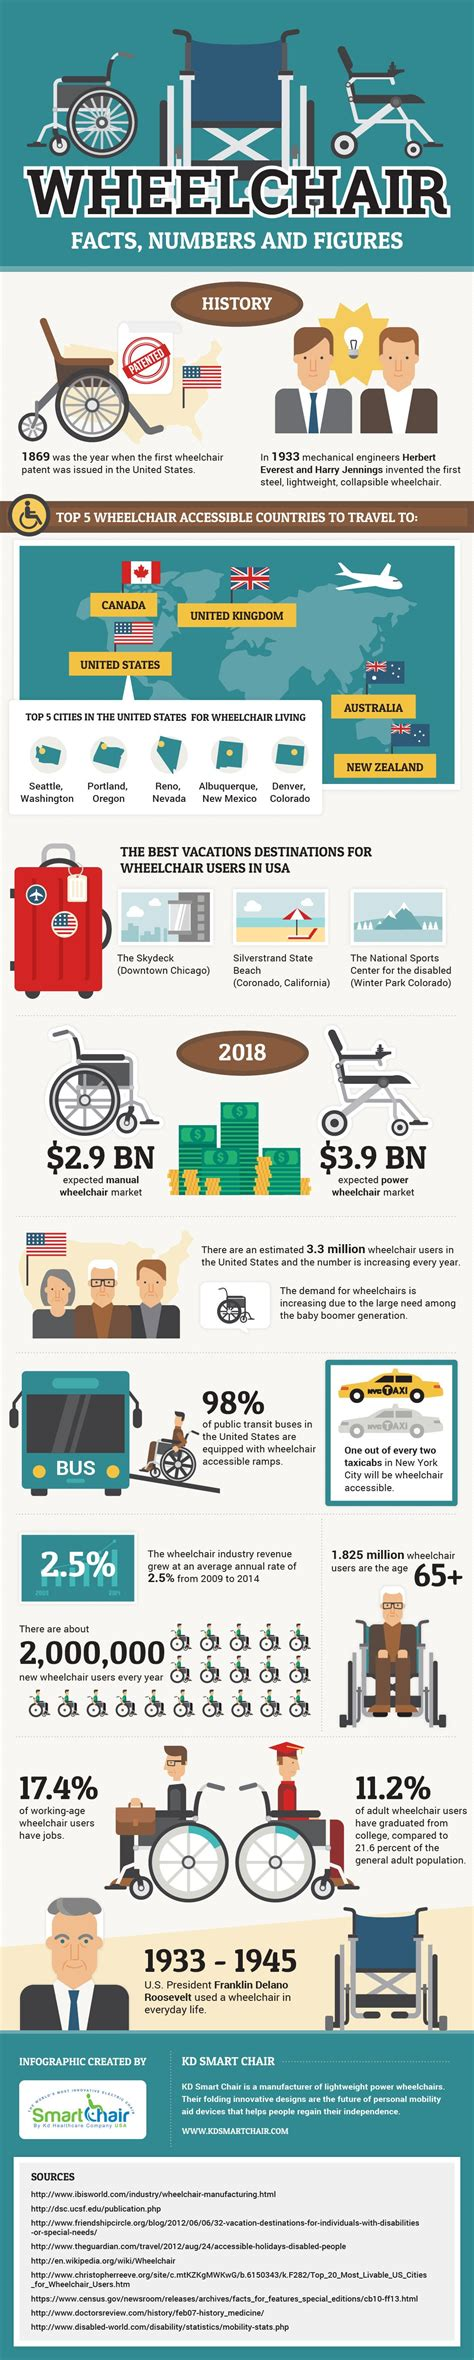 Wheelchair Facts, Numbers And Figures [infographic] Kd